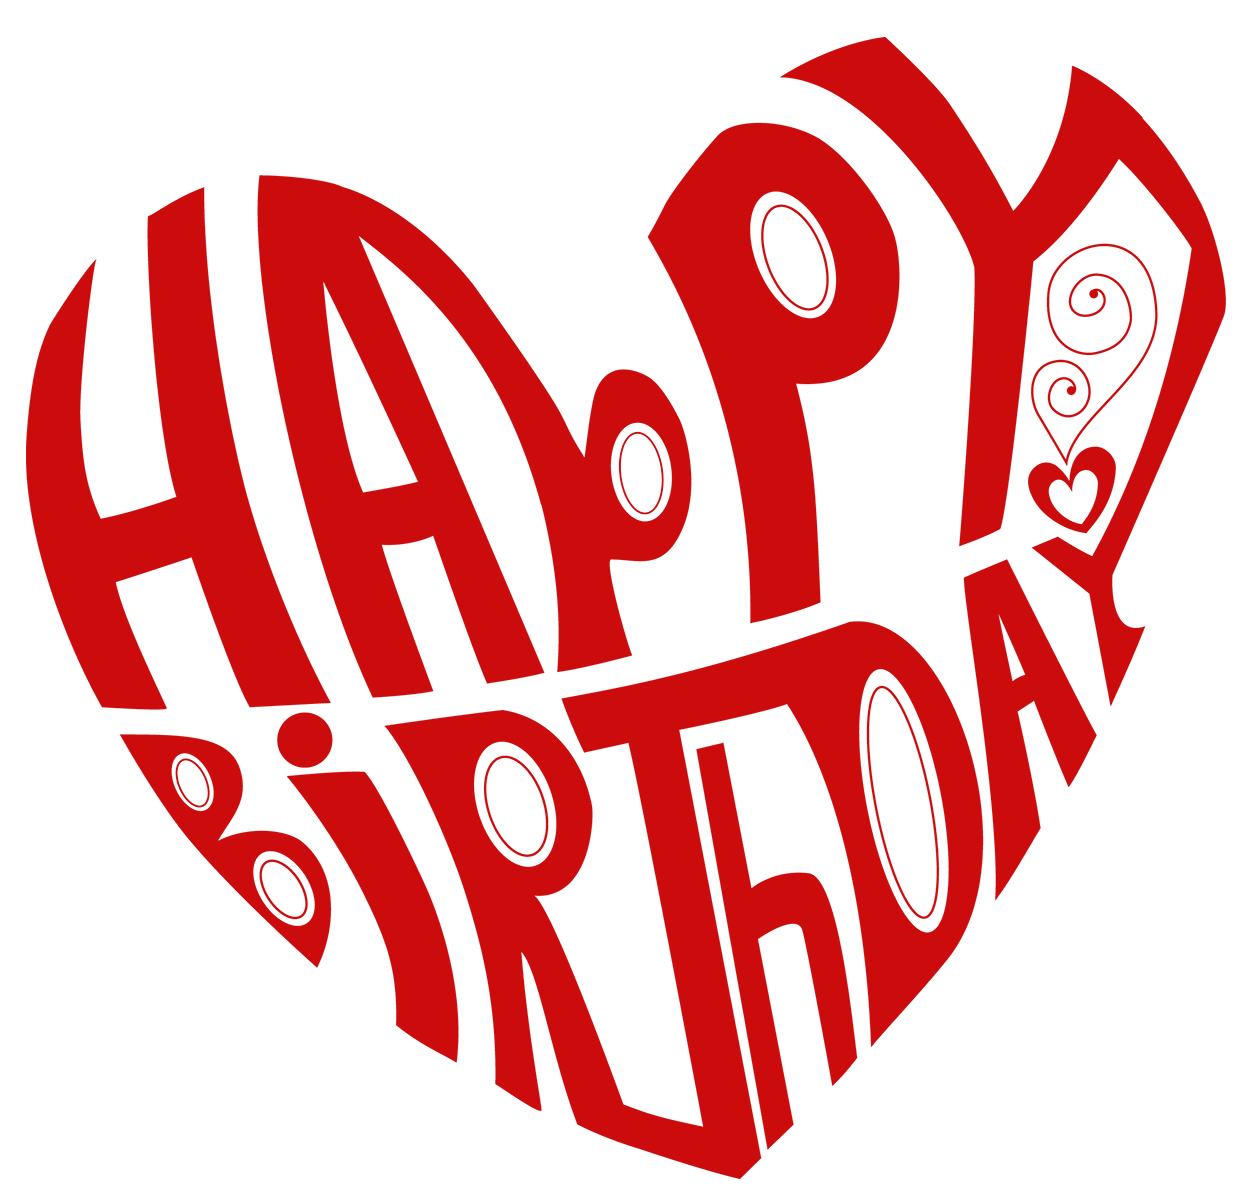 Happy birthday heart clipart for her clipart stock Transparent Heart Happy Birthday PNG Picture | Gallery Yopriceville ... clipart stock